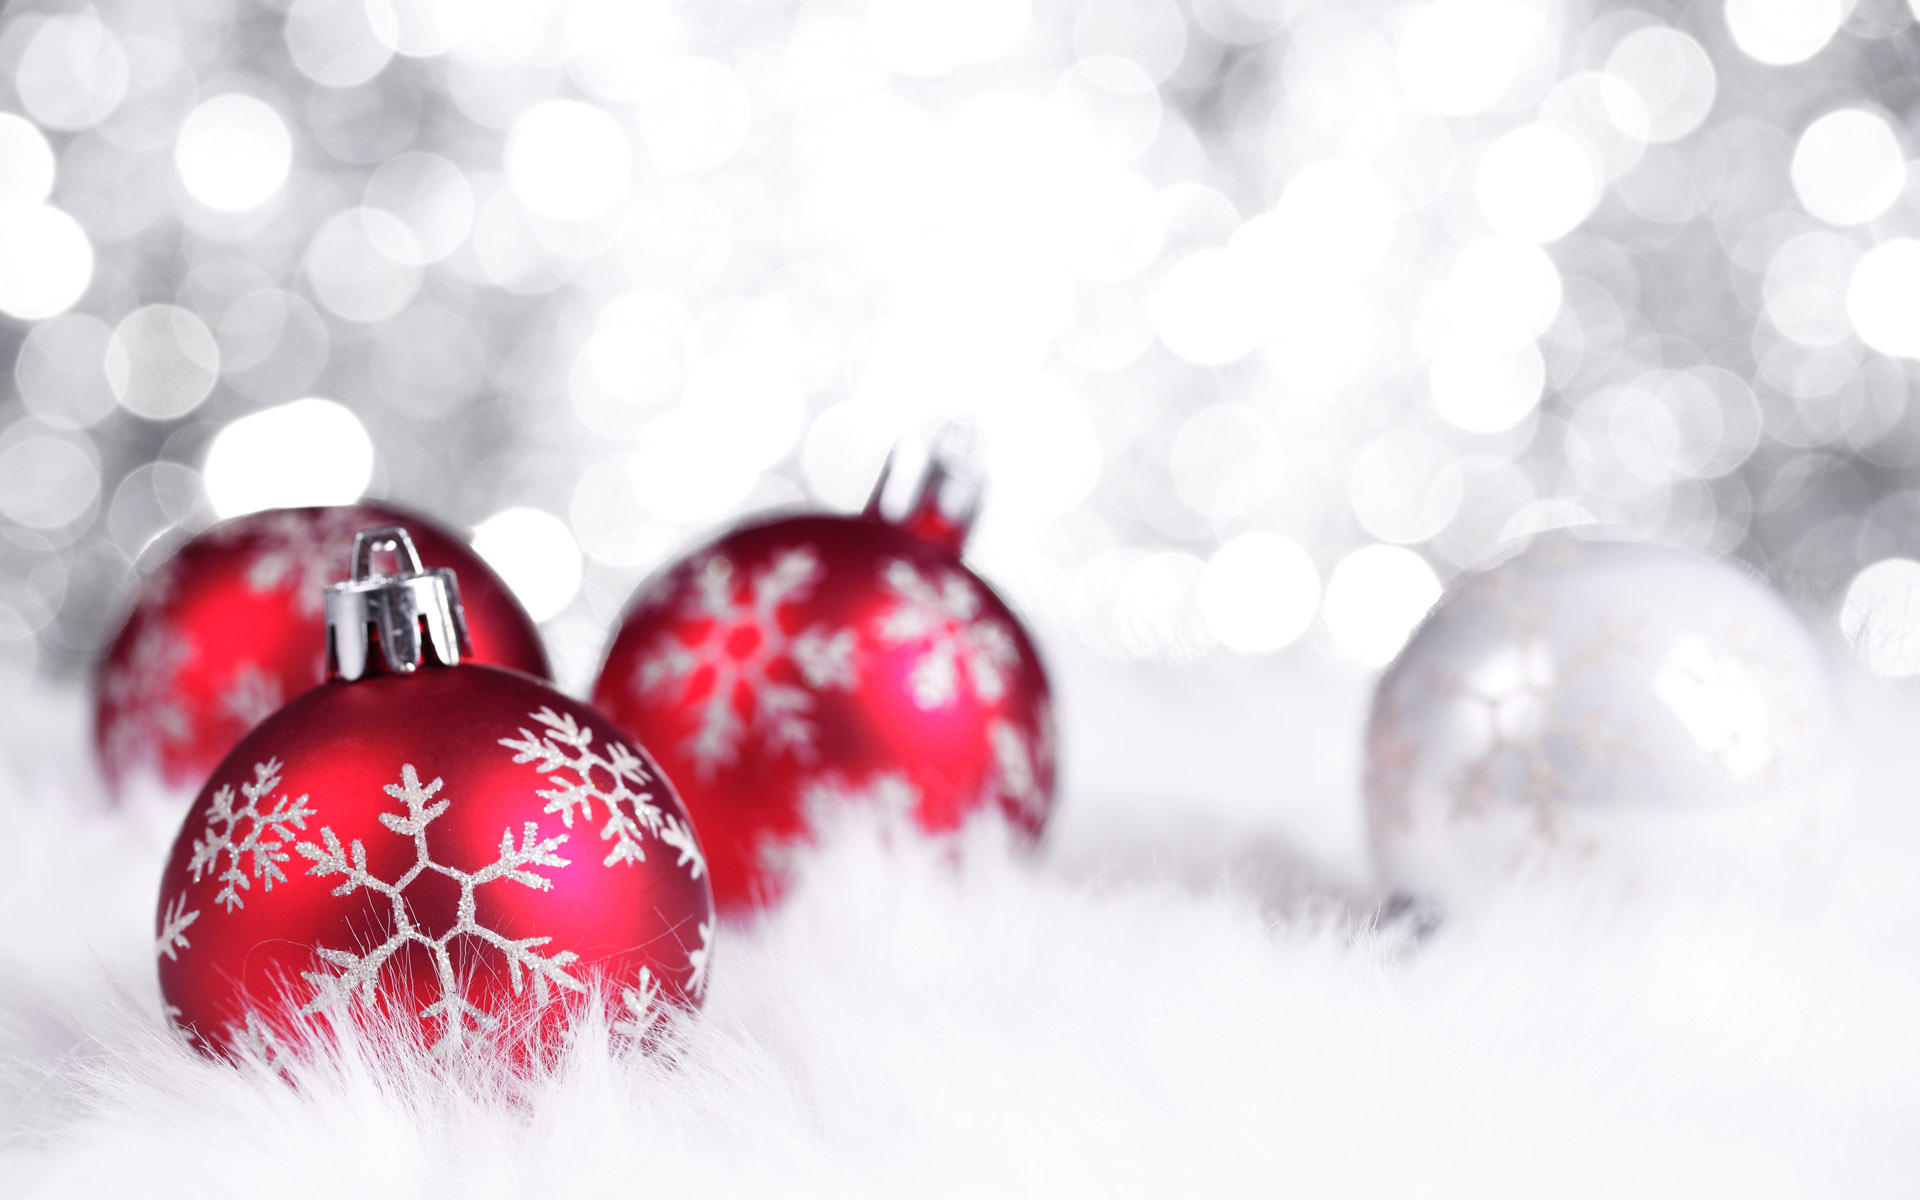 Red And White Christmas Ornament Wallpaper